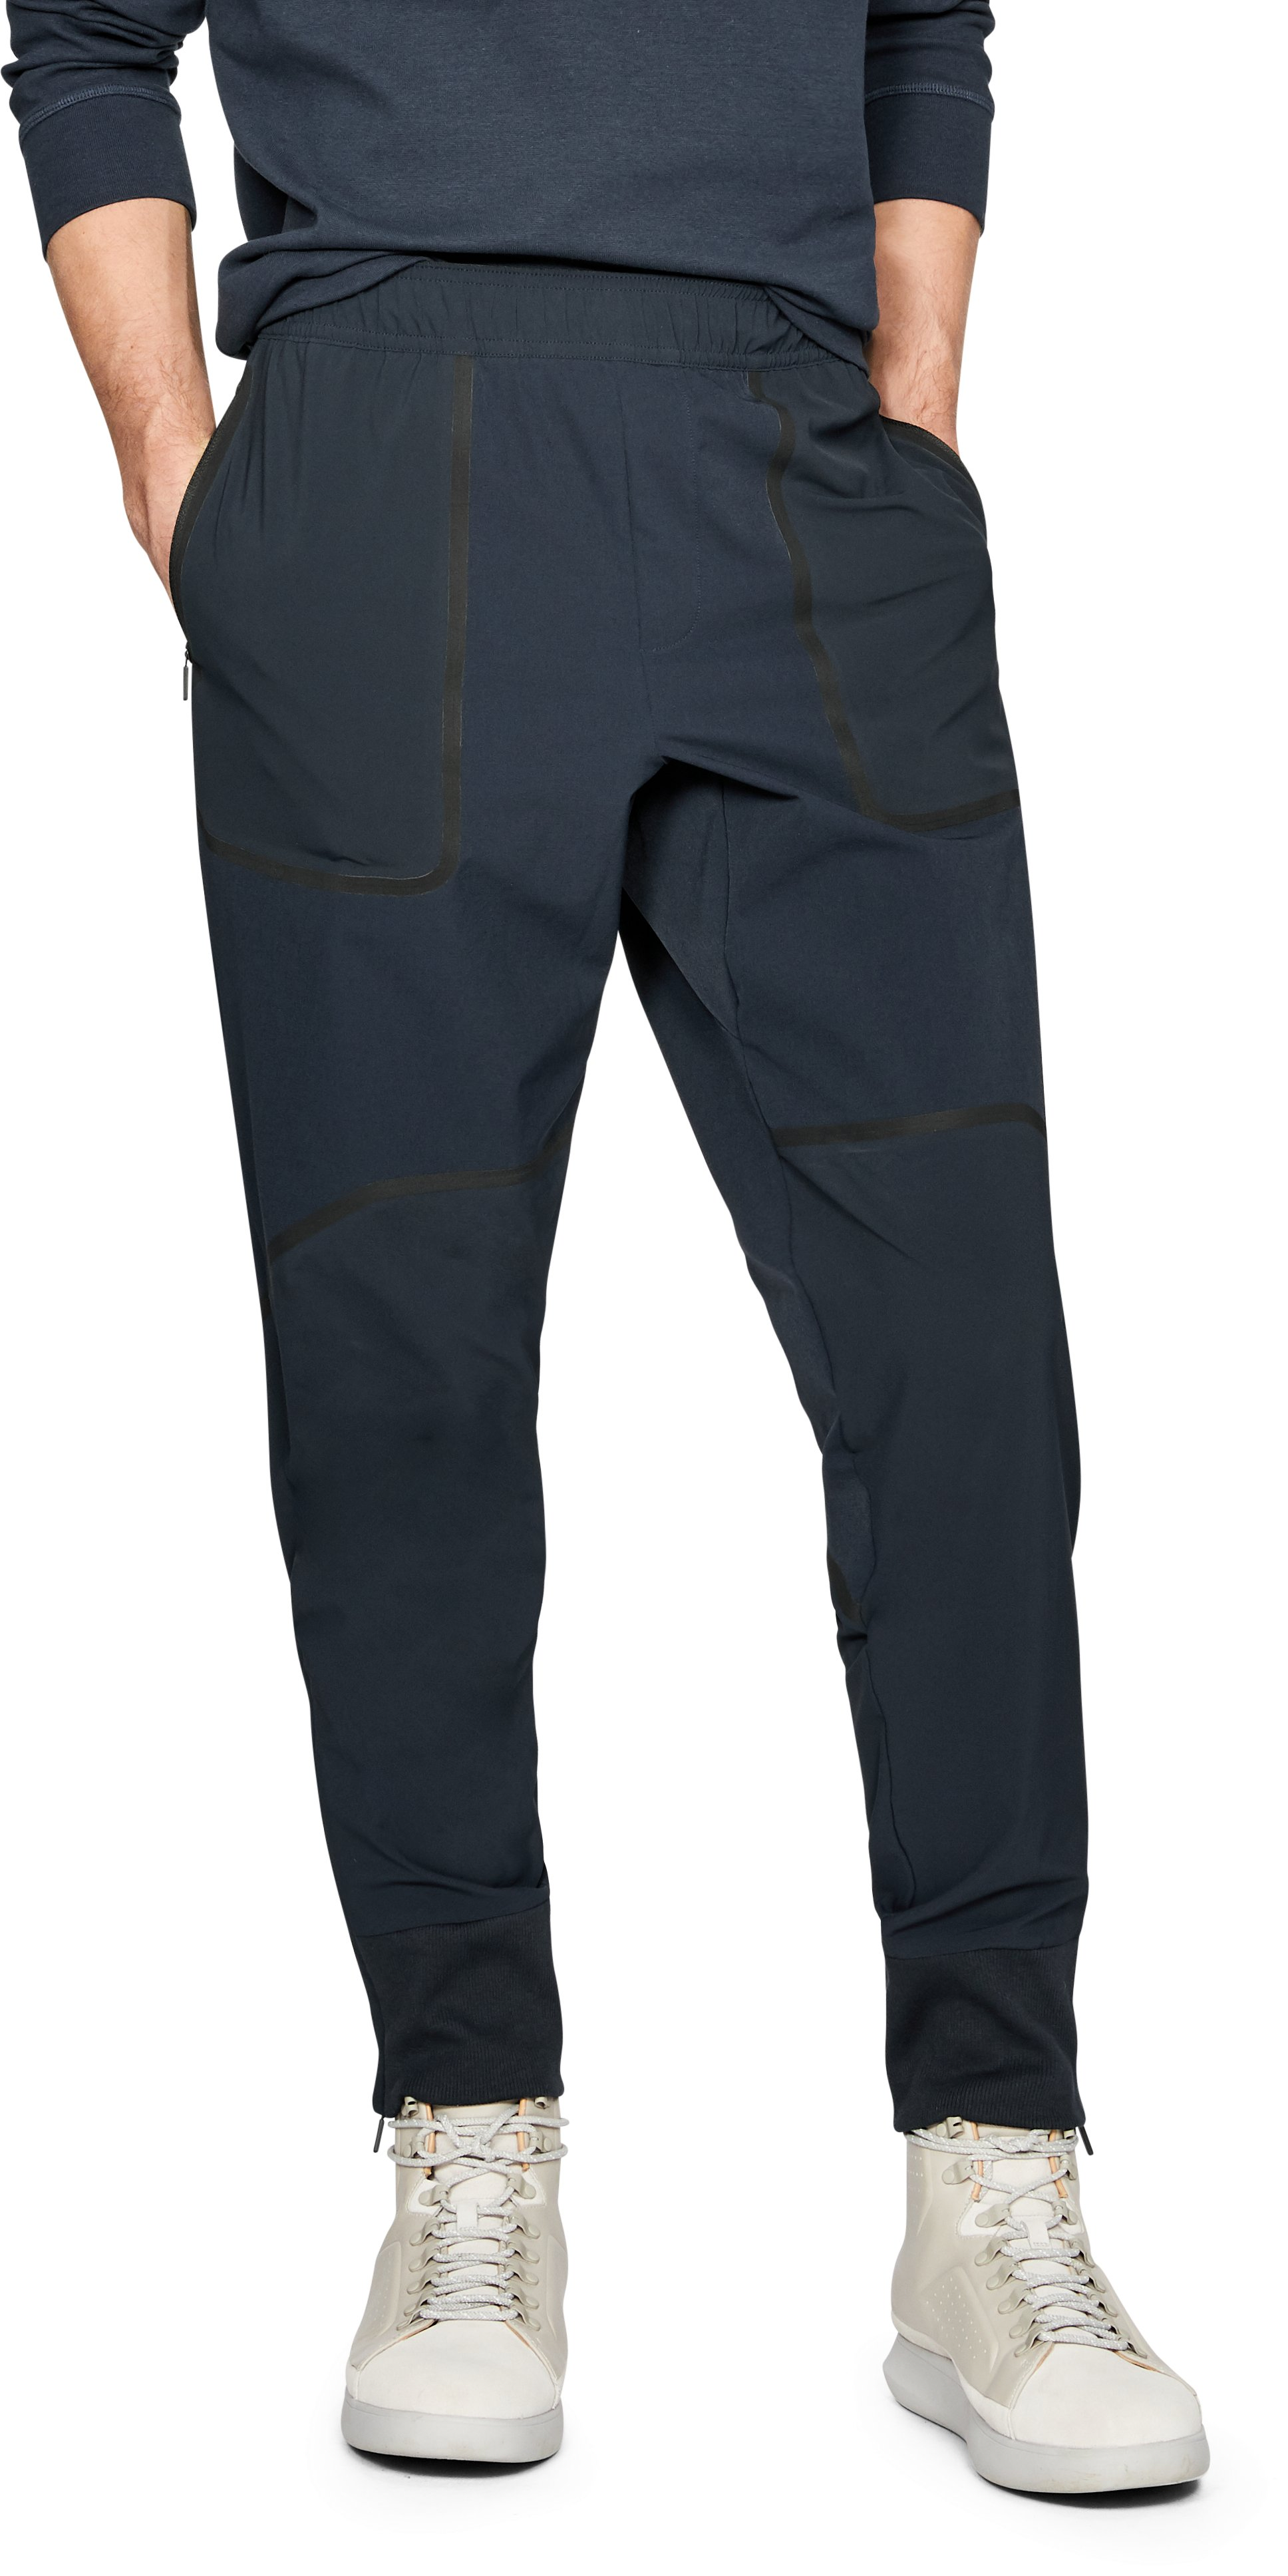 Men's UAS Pivot Stretch Crepe Sweatpants 2 Colors $108.00